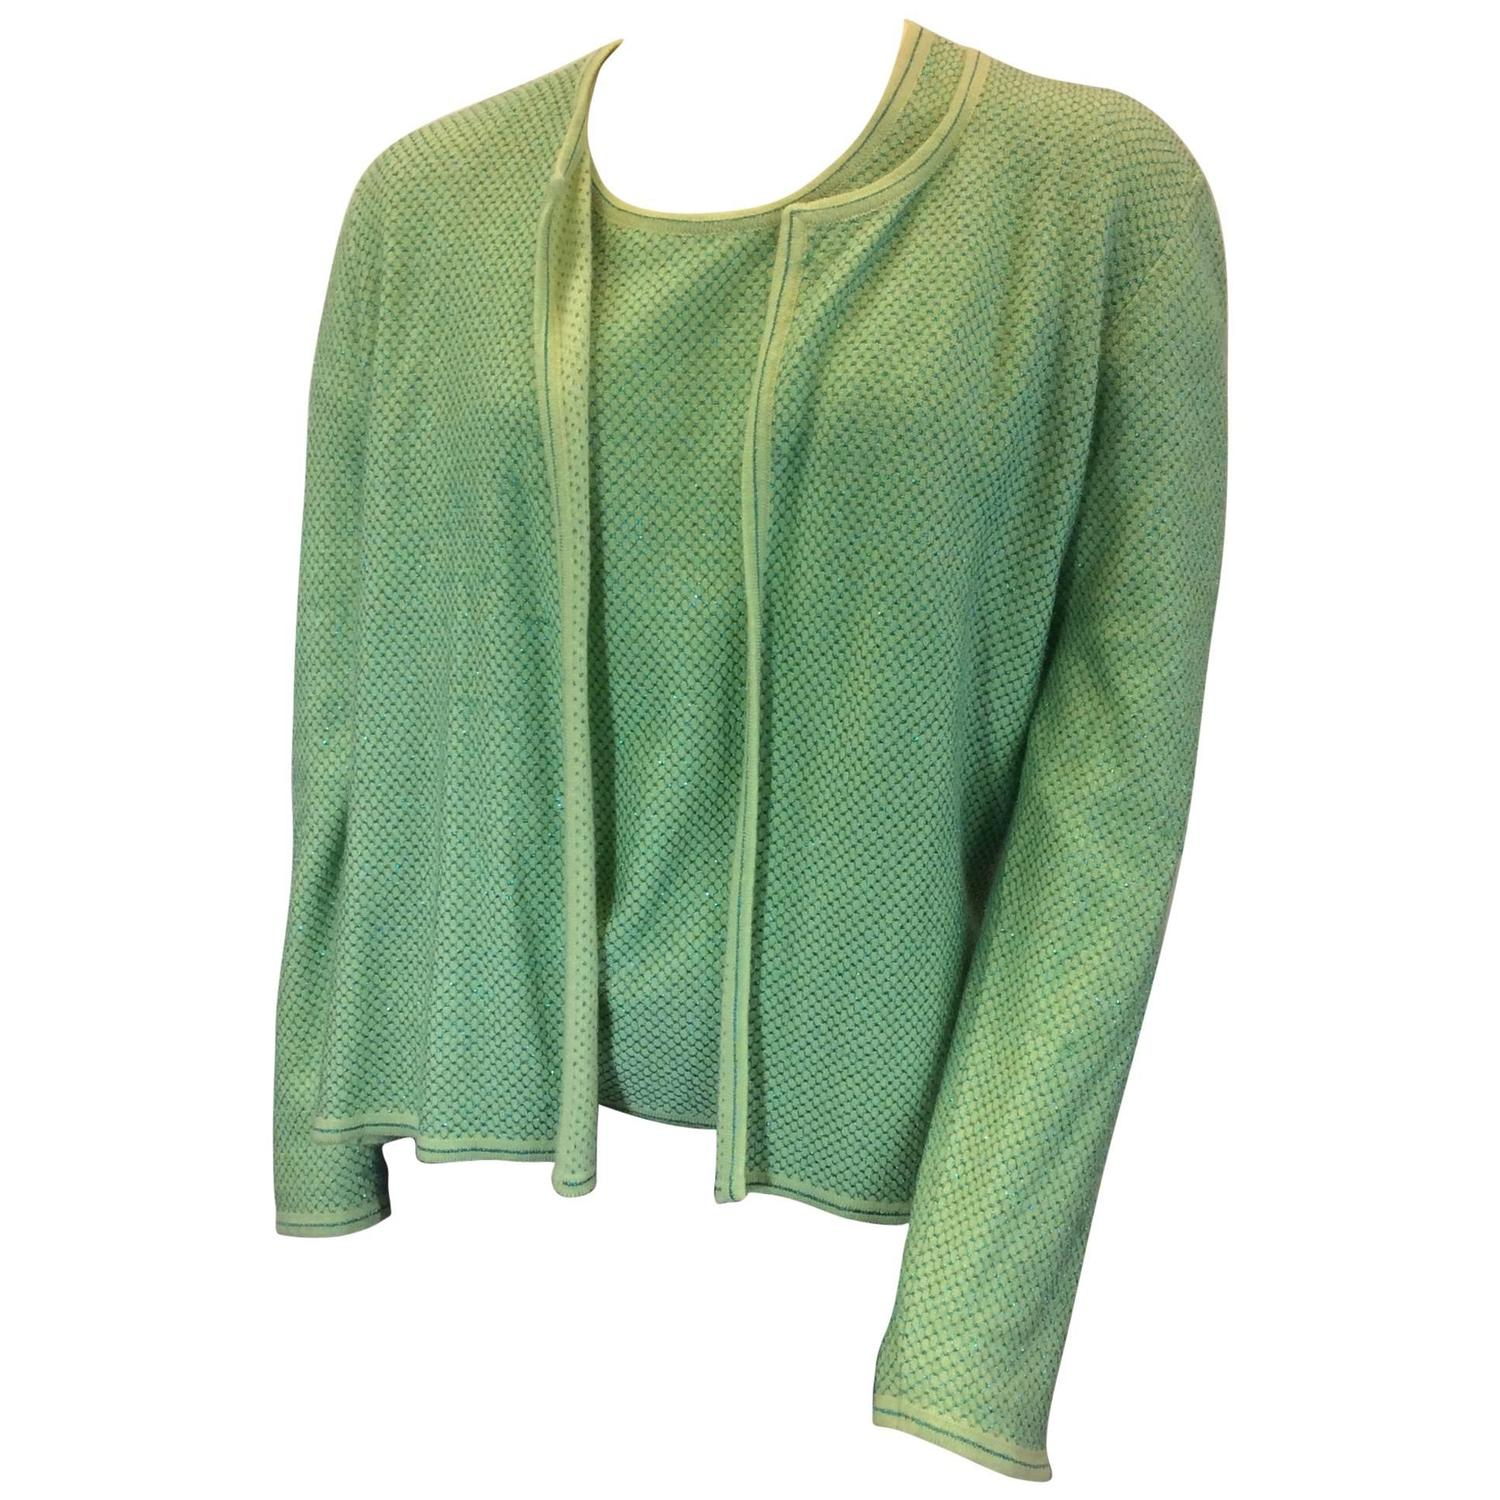 Shop Chadwicks of Boston for classic sweaters & tops and sweater sets for women online. Affordable classics in misses, petite, tall & plus sizes. Login New Shopper Checkout as guest Login Register Save Bag Save your bag Cancel. NOTE: Buy more save more pricing does not apply to sale or clearance colors. 5 () 5 ().